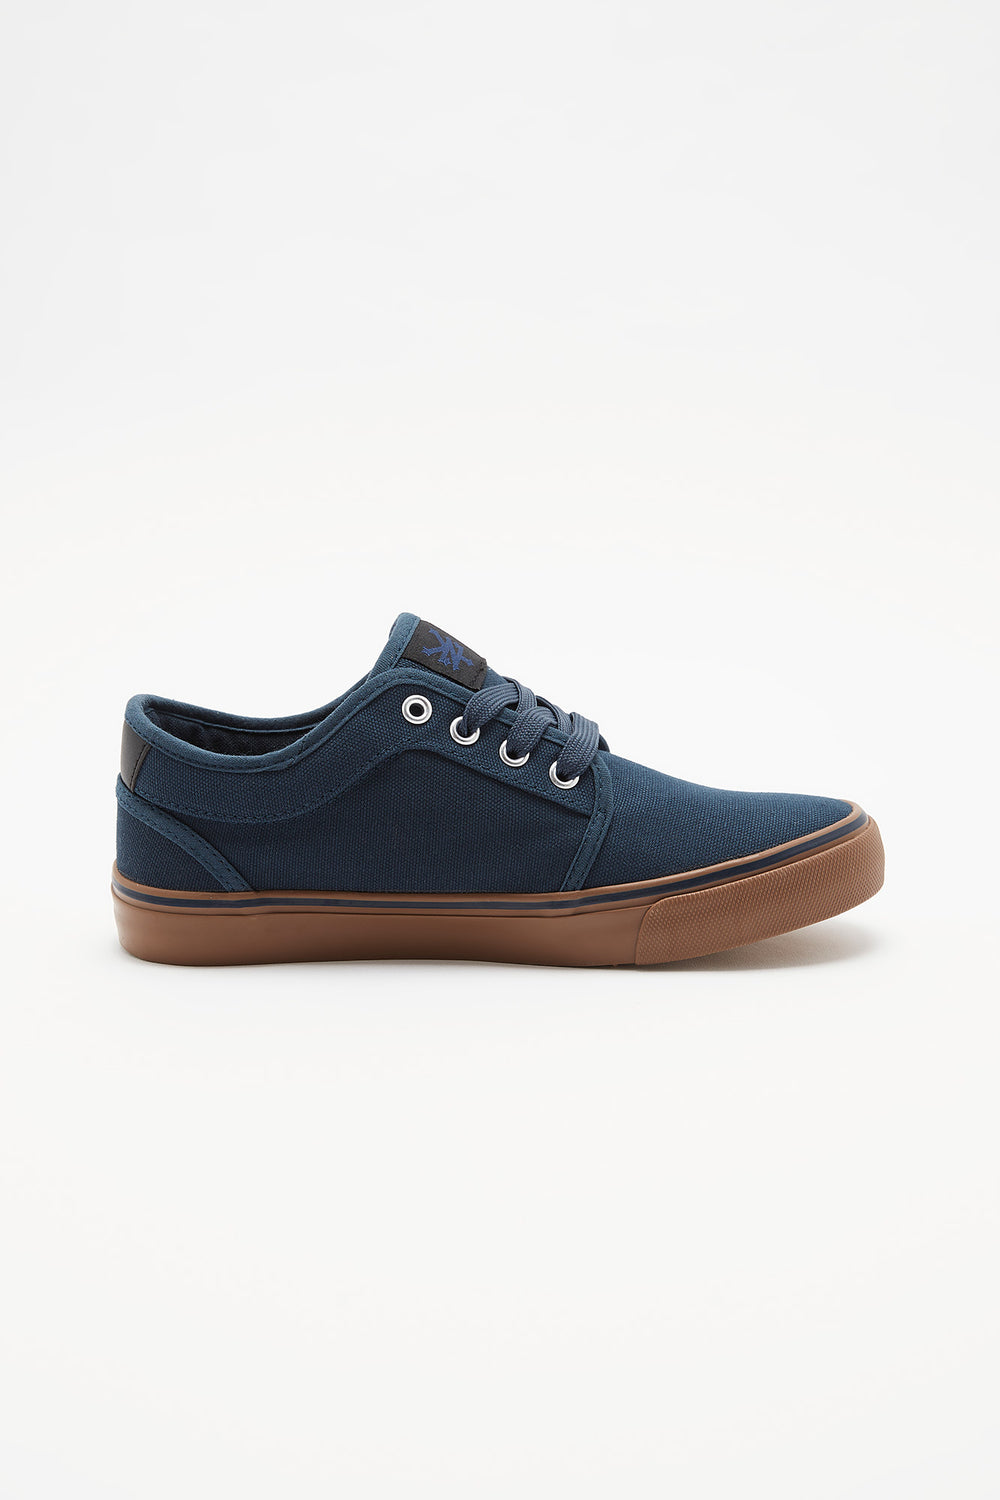 Zoo York Boys Lace-Up Canvas Skate Shoes Navy